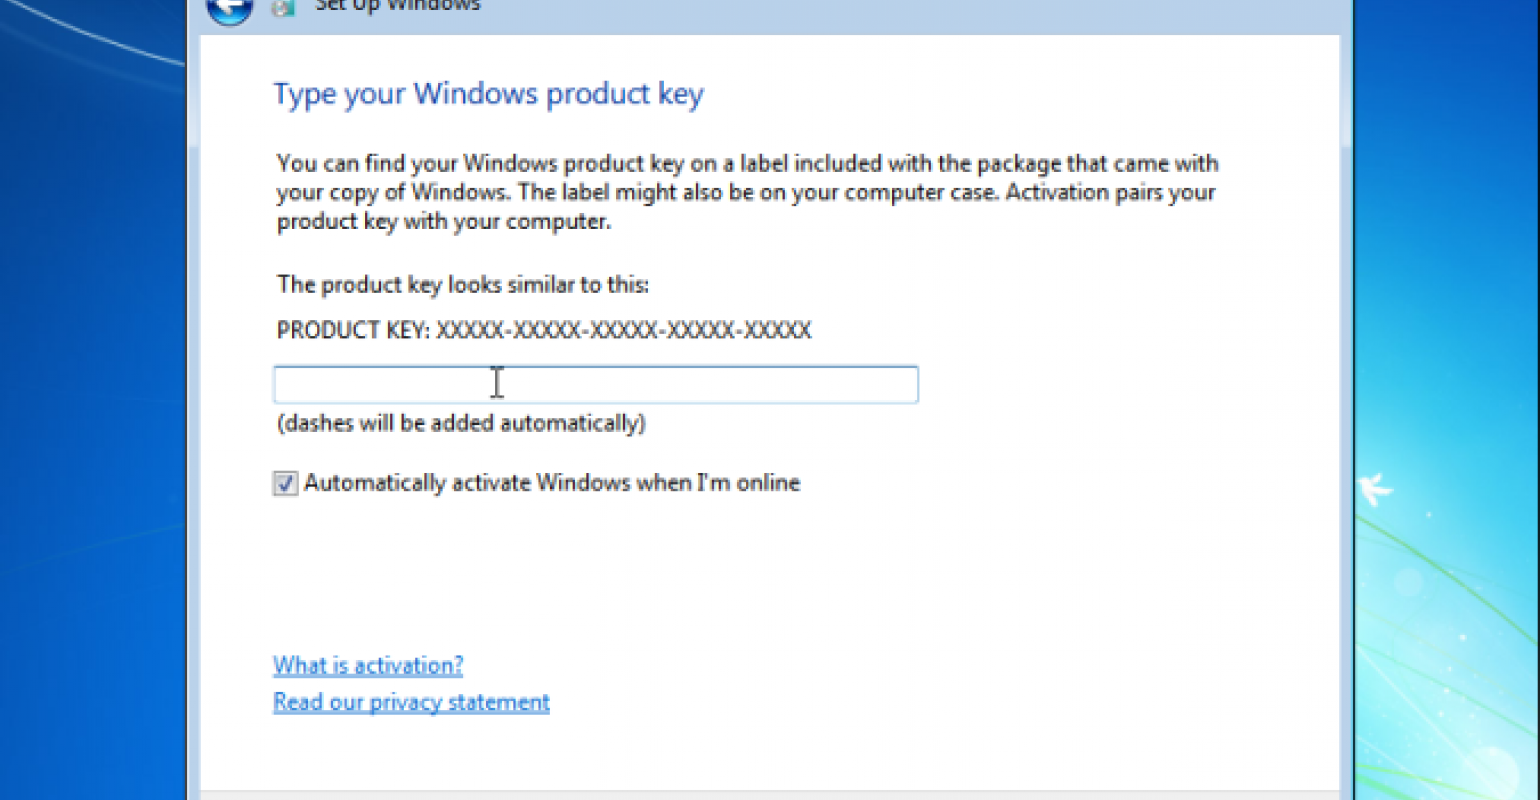 Official Microsoft blog lays out Windows 10 upgrade paths